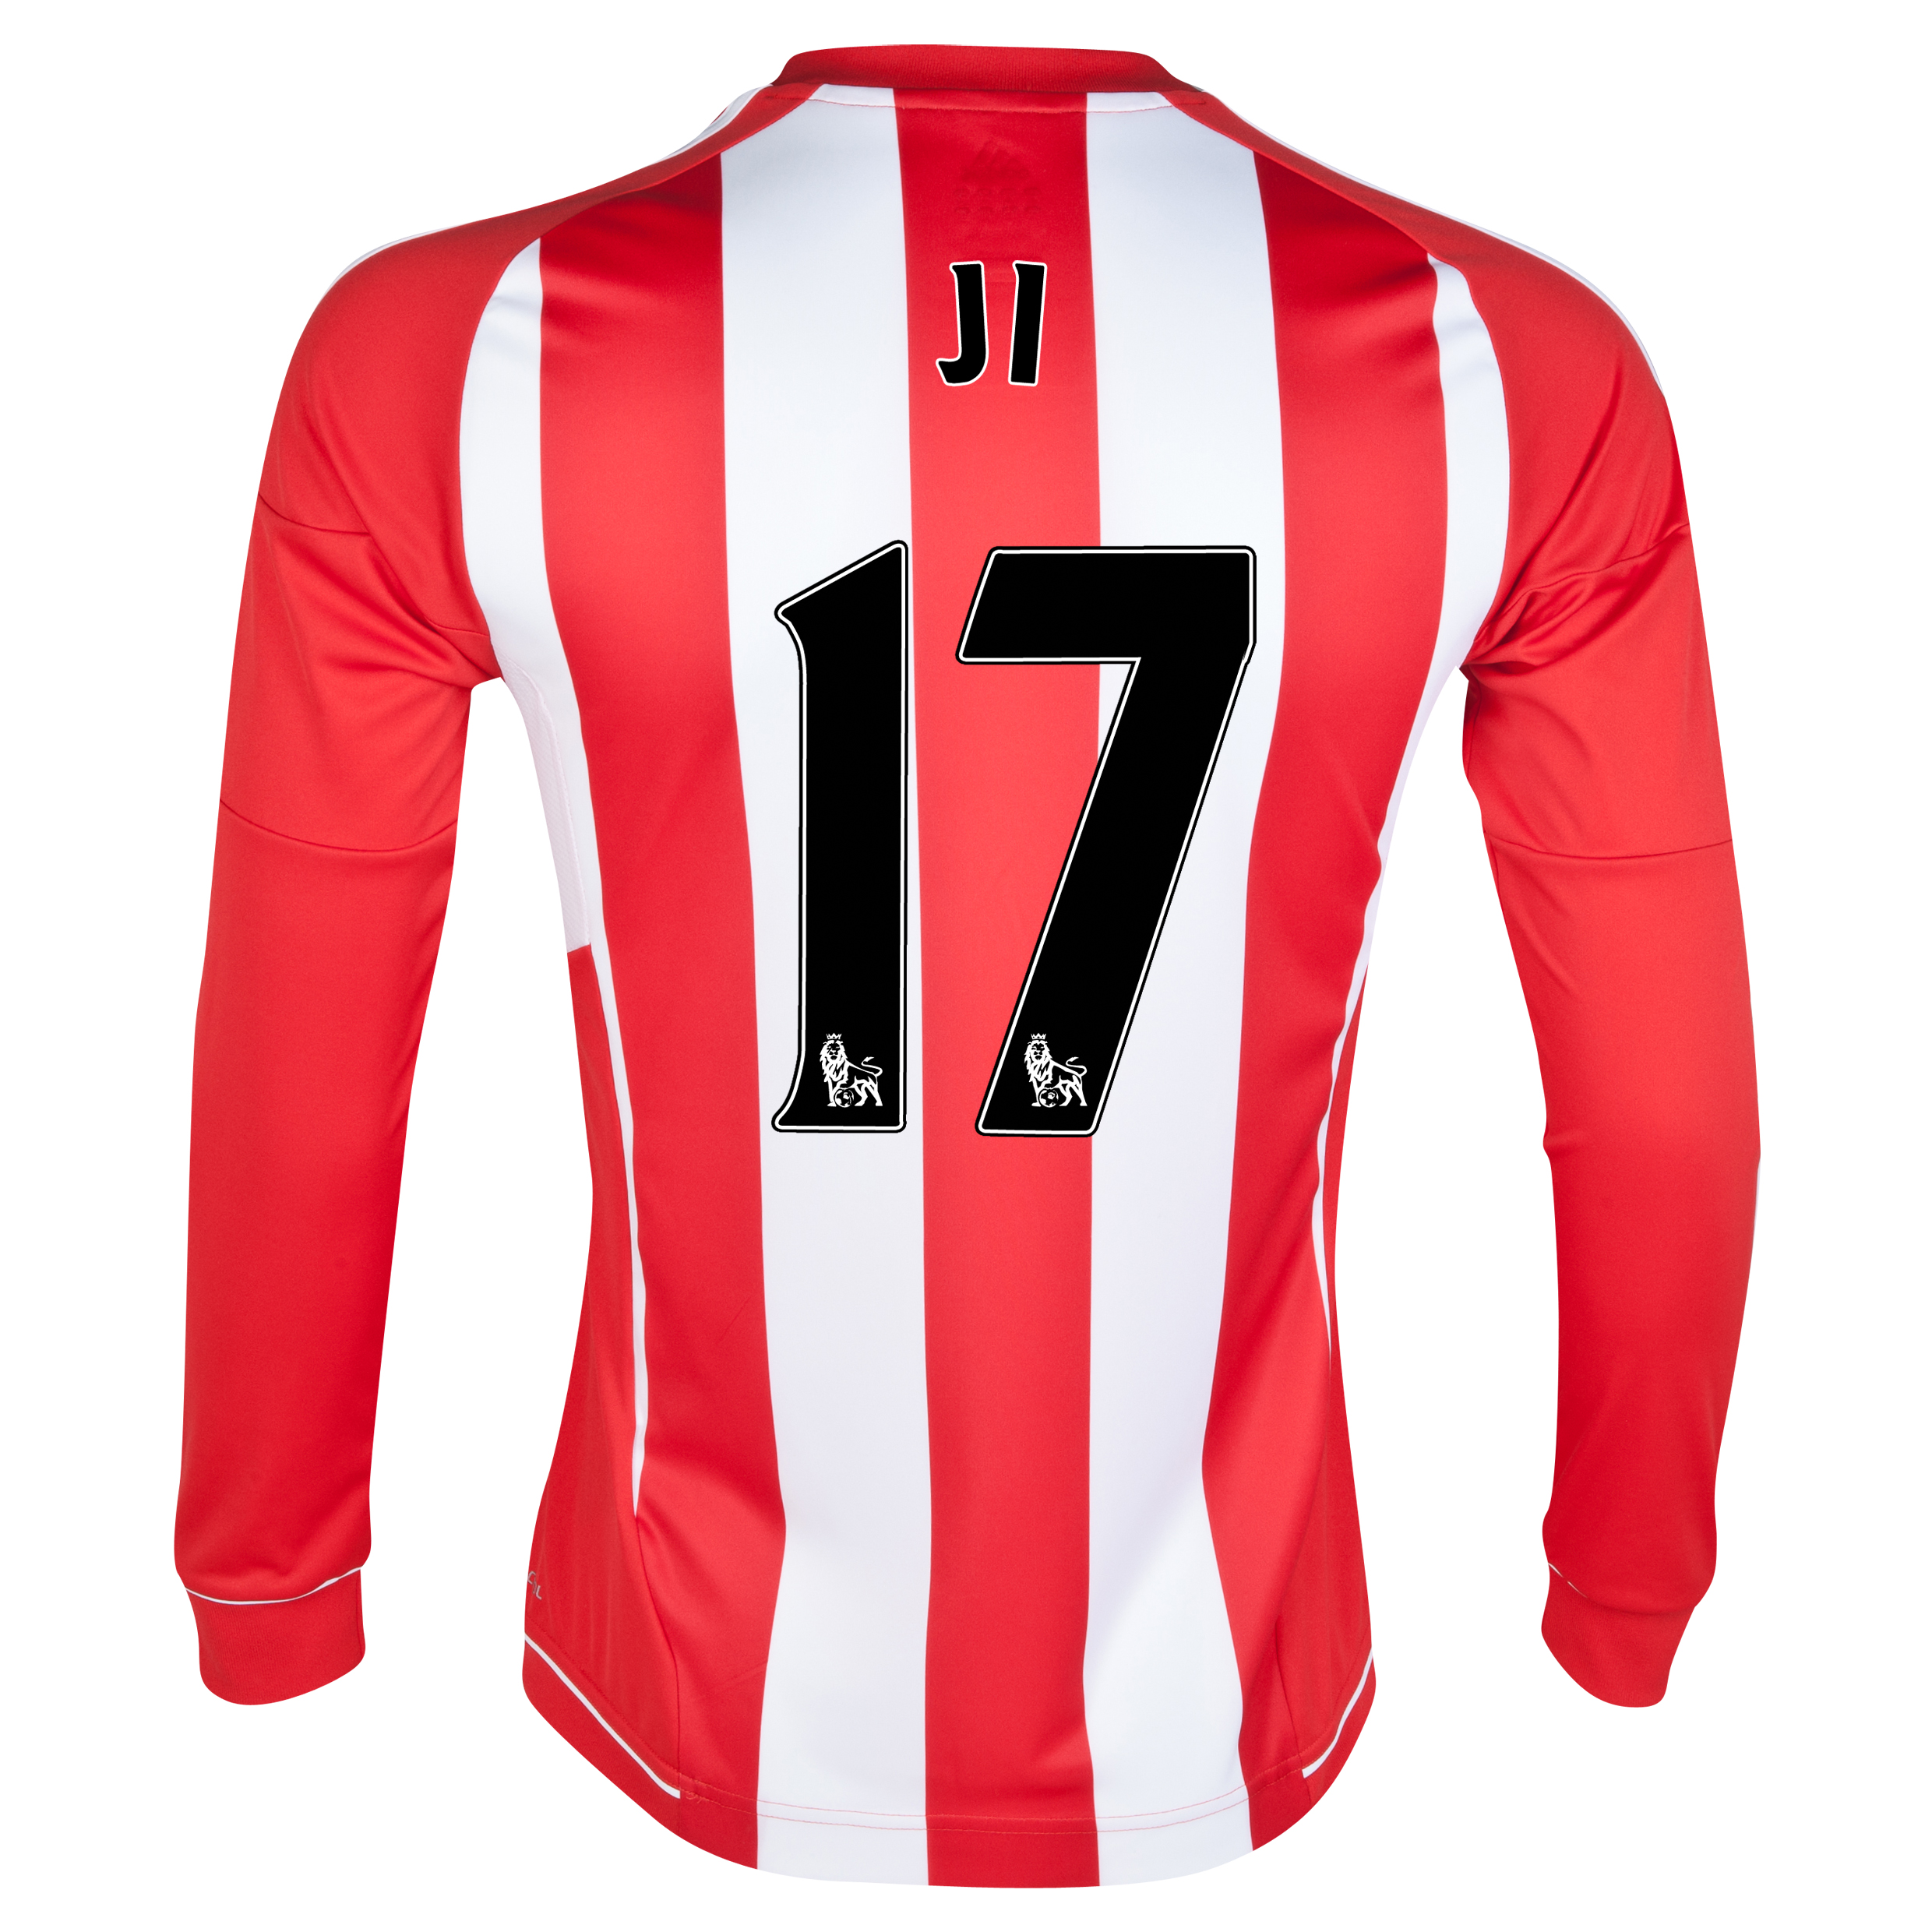 Sunderland Home Shirt 2012/13 - Long Sleeved with Ji 17 printing